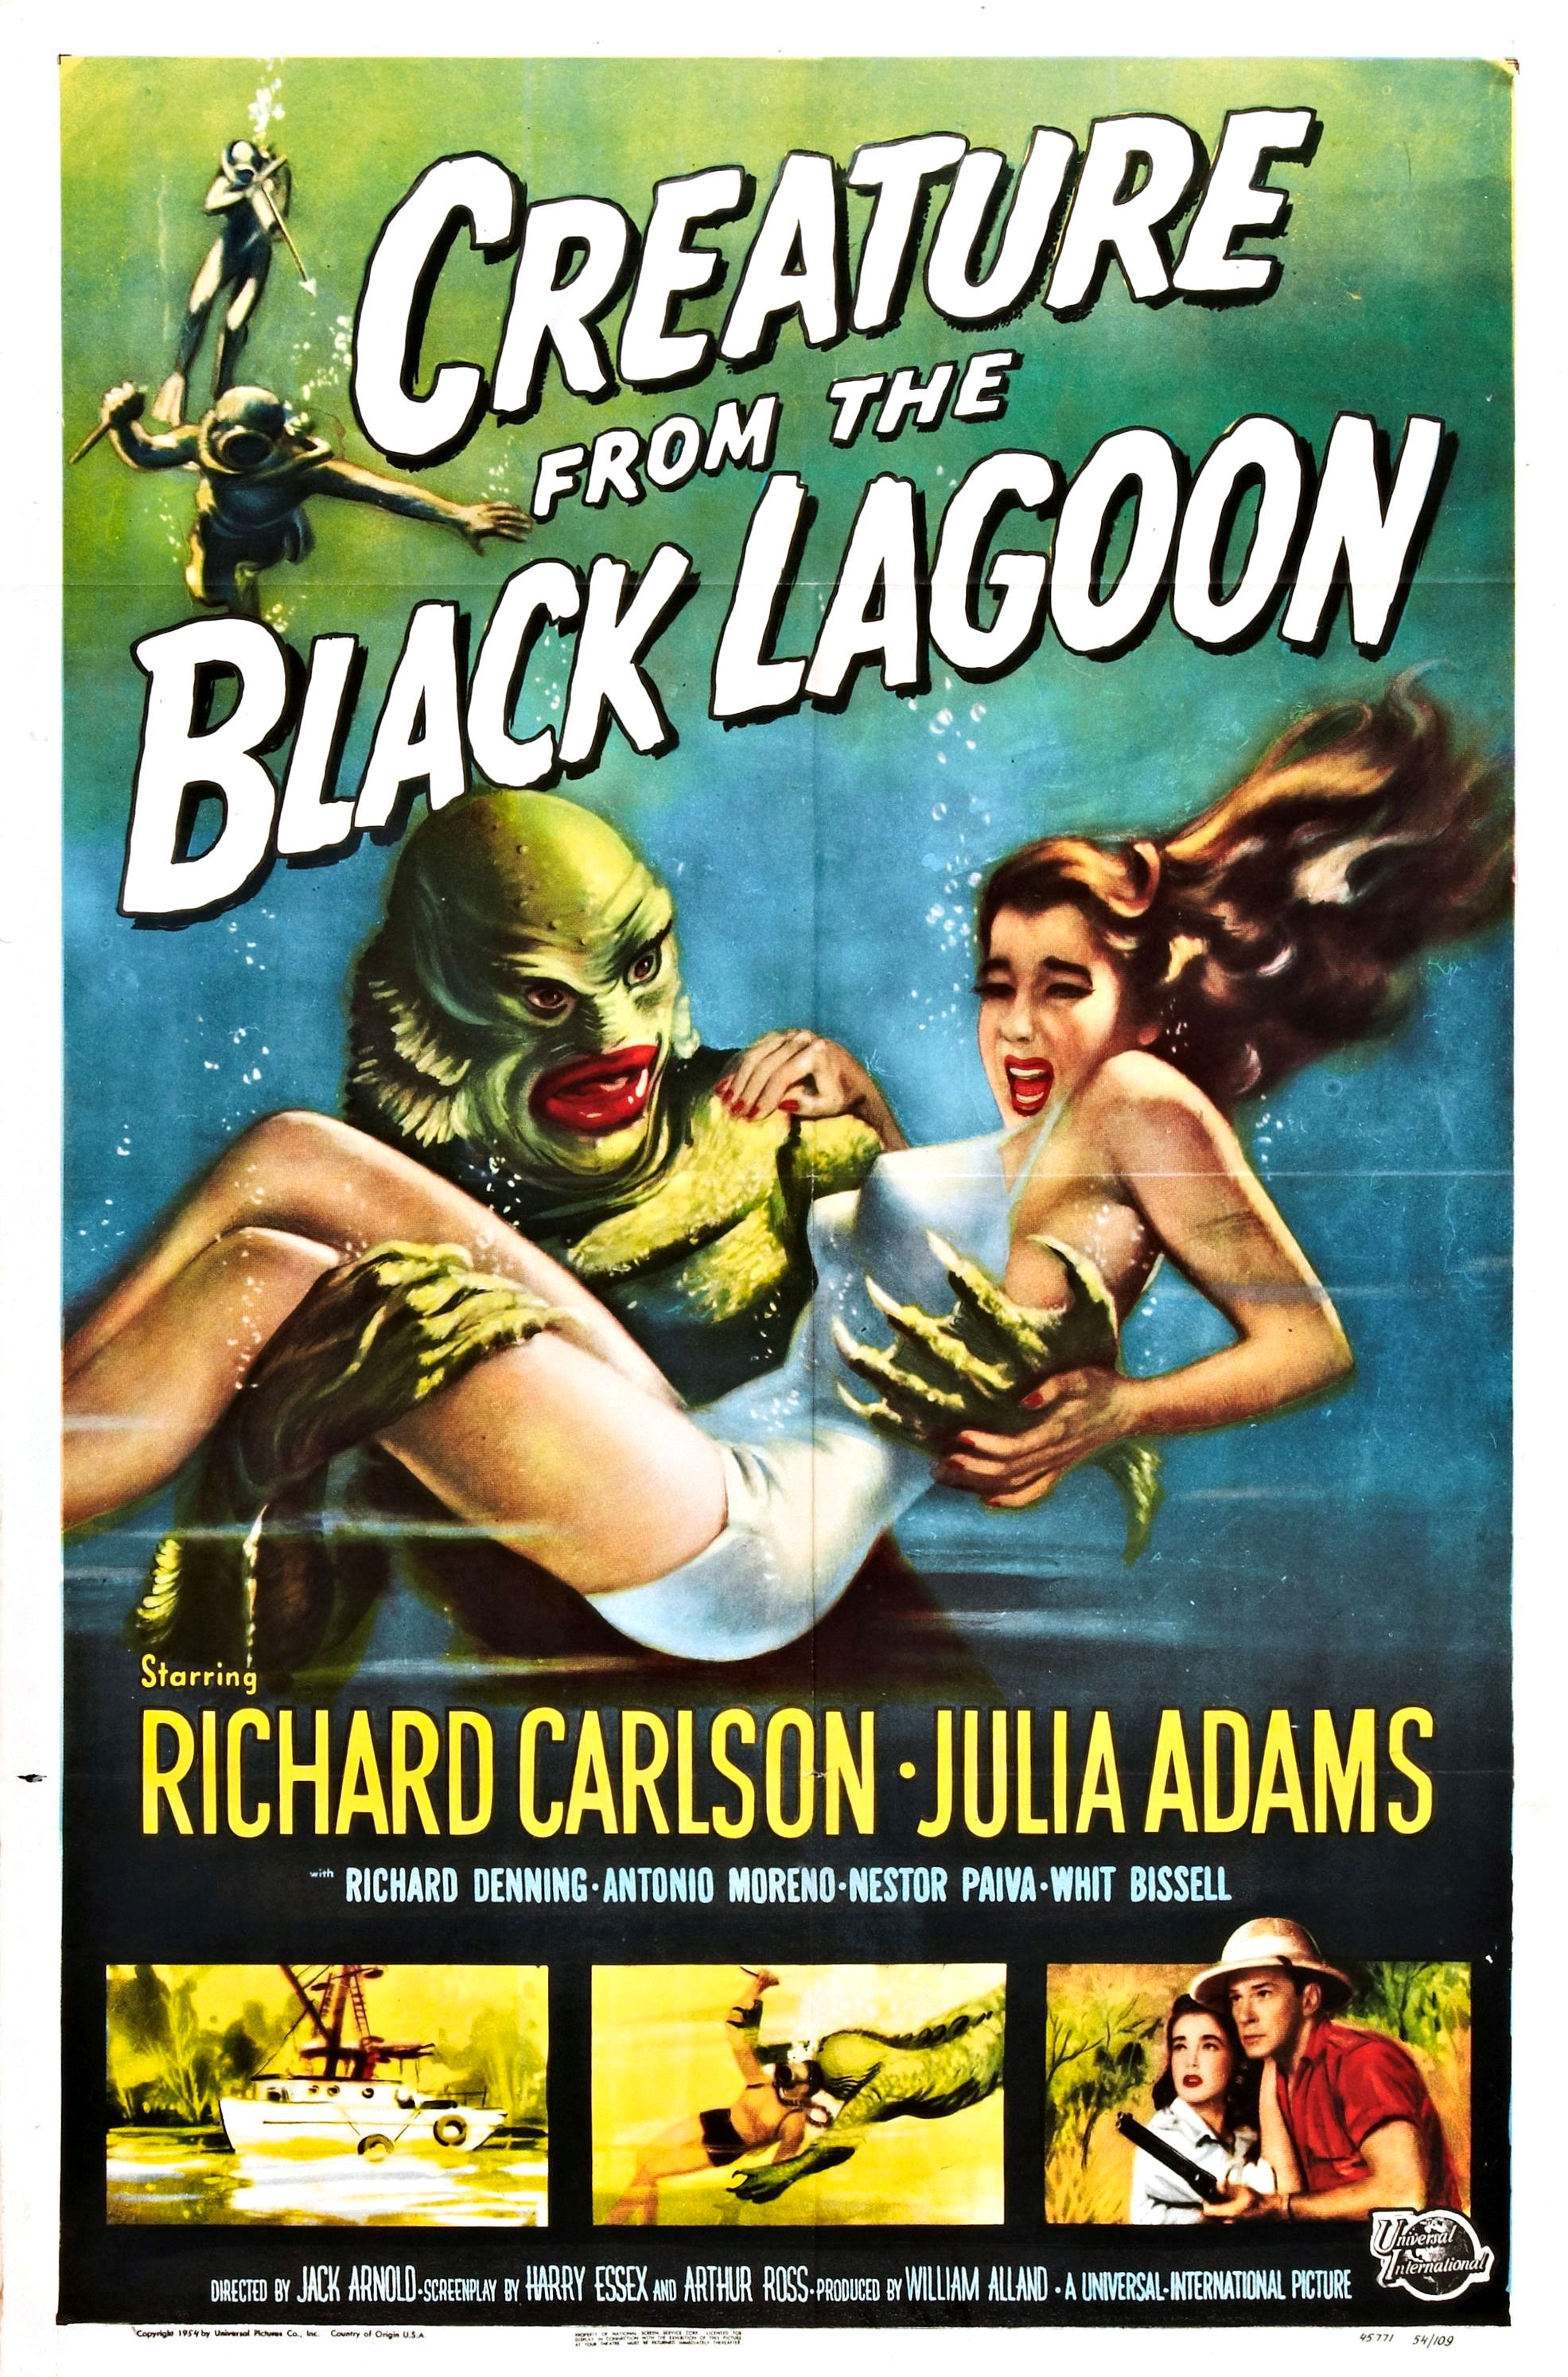 https://upload.wikimedia.org/wikipedia/commons/5/55/Creature_from_the_Black_Lagoon_poster.jpg